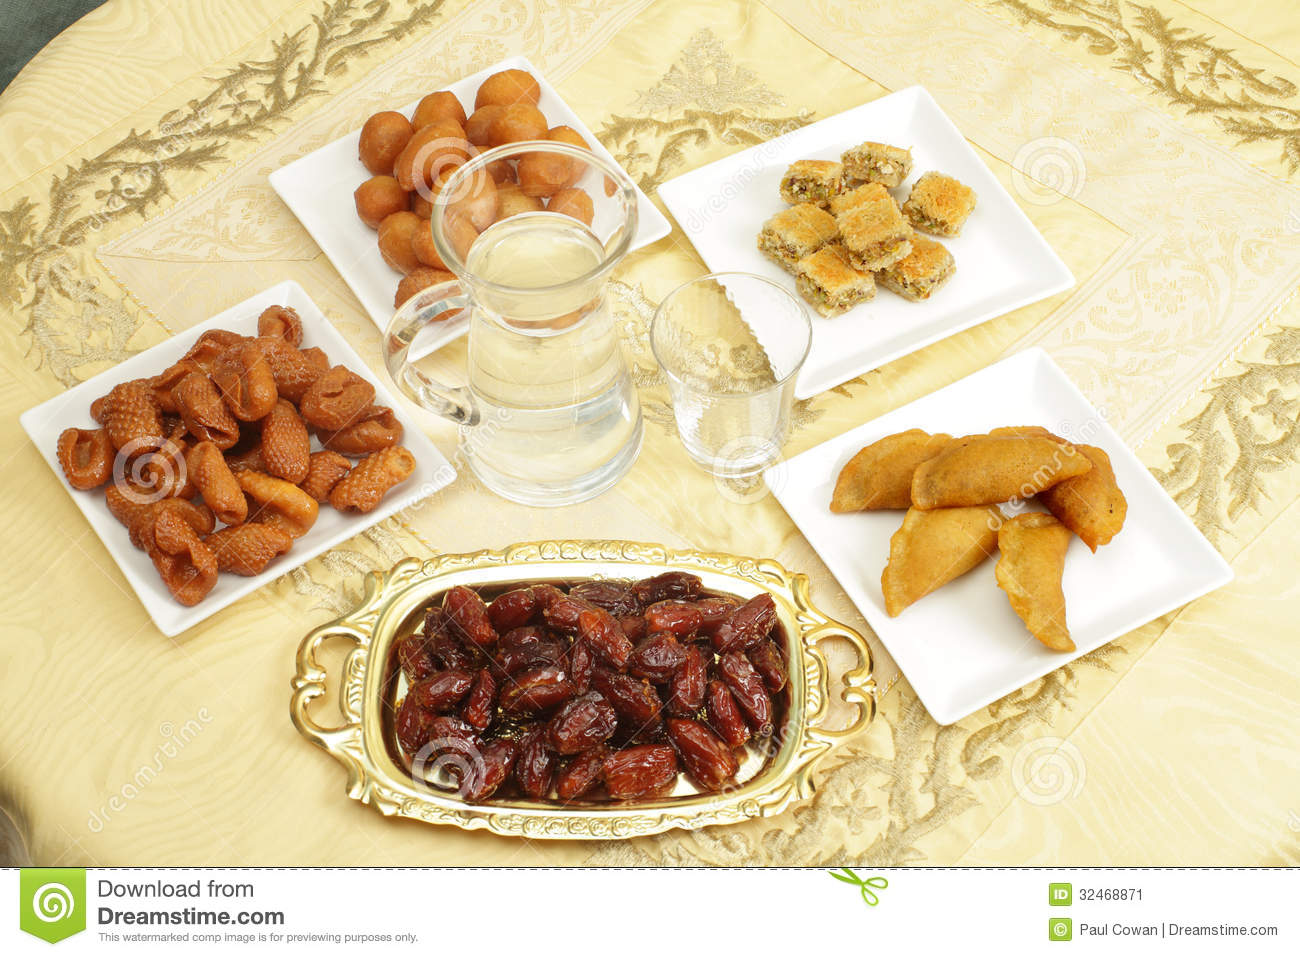 sweet water muslim 19 middle eastern desserts to remember this 19 middle eastern desserts to remember this ramadan dessert drizzled with either rose water or a sweet simple.